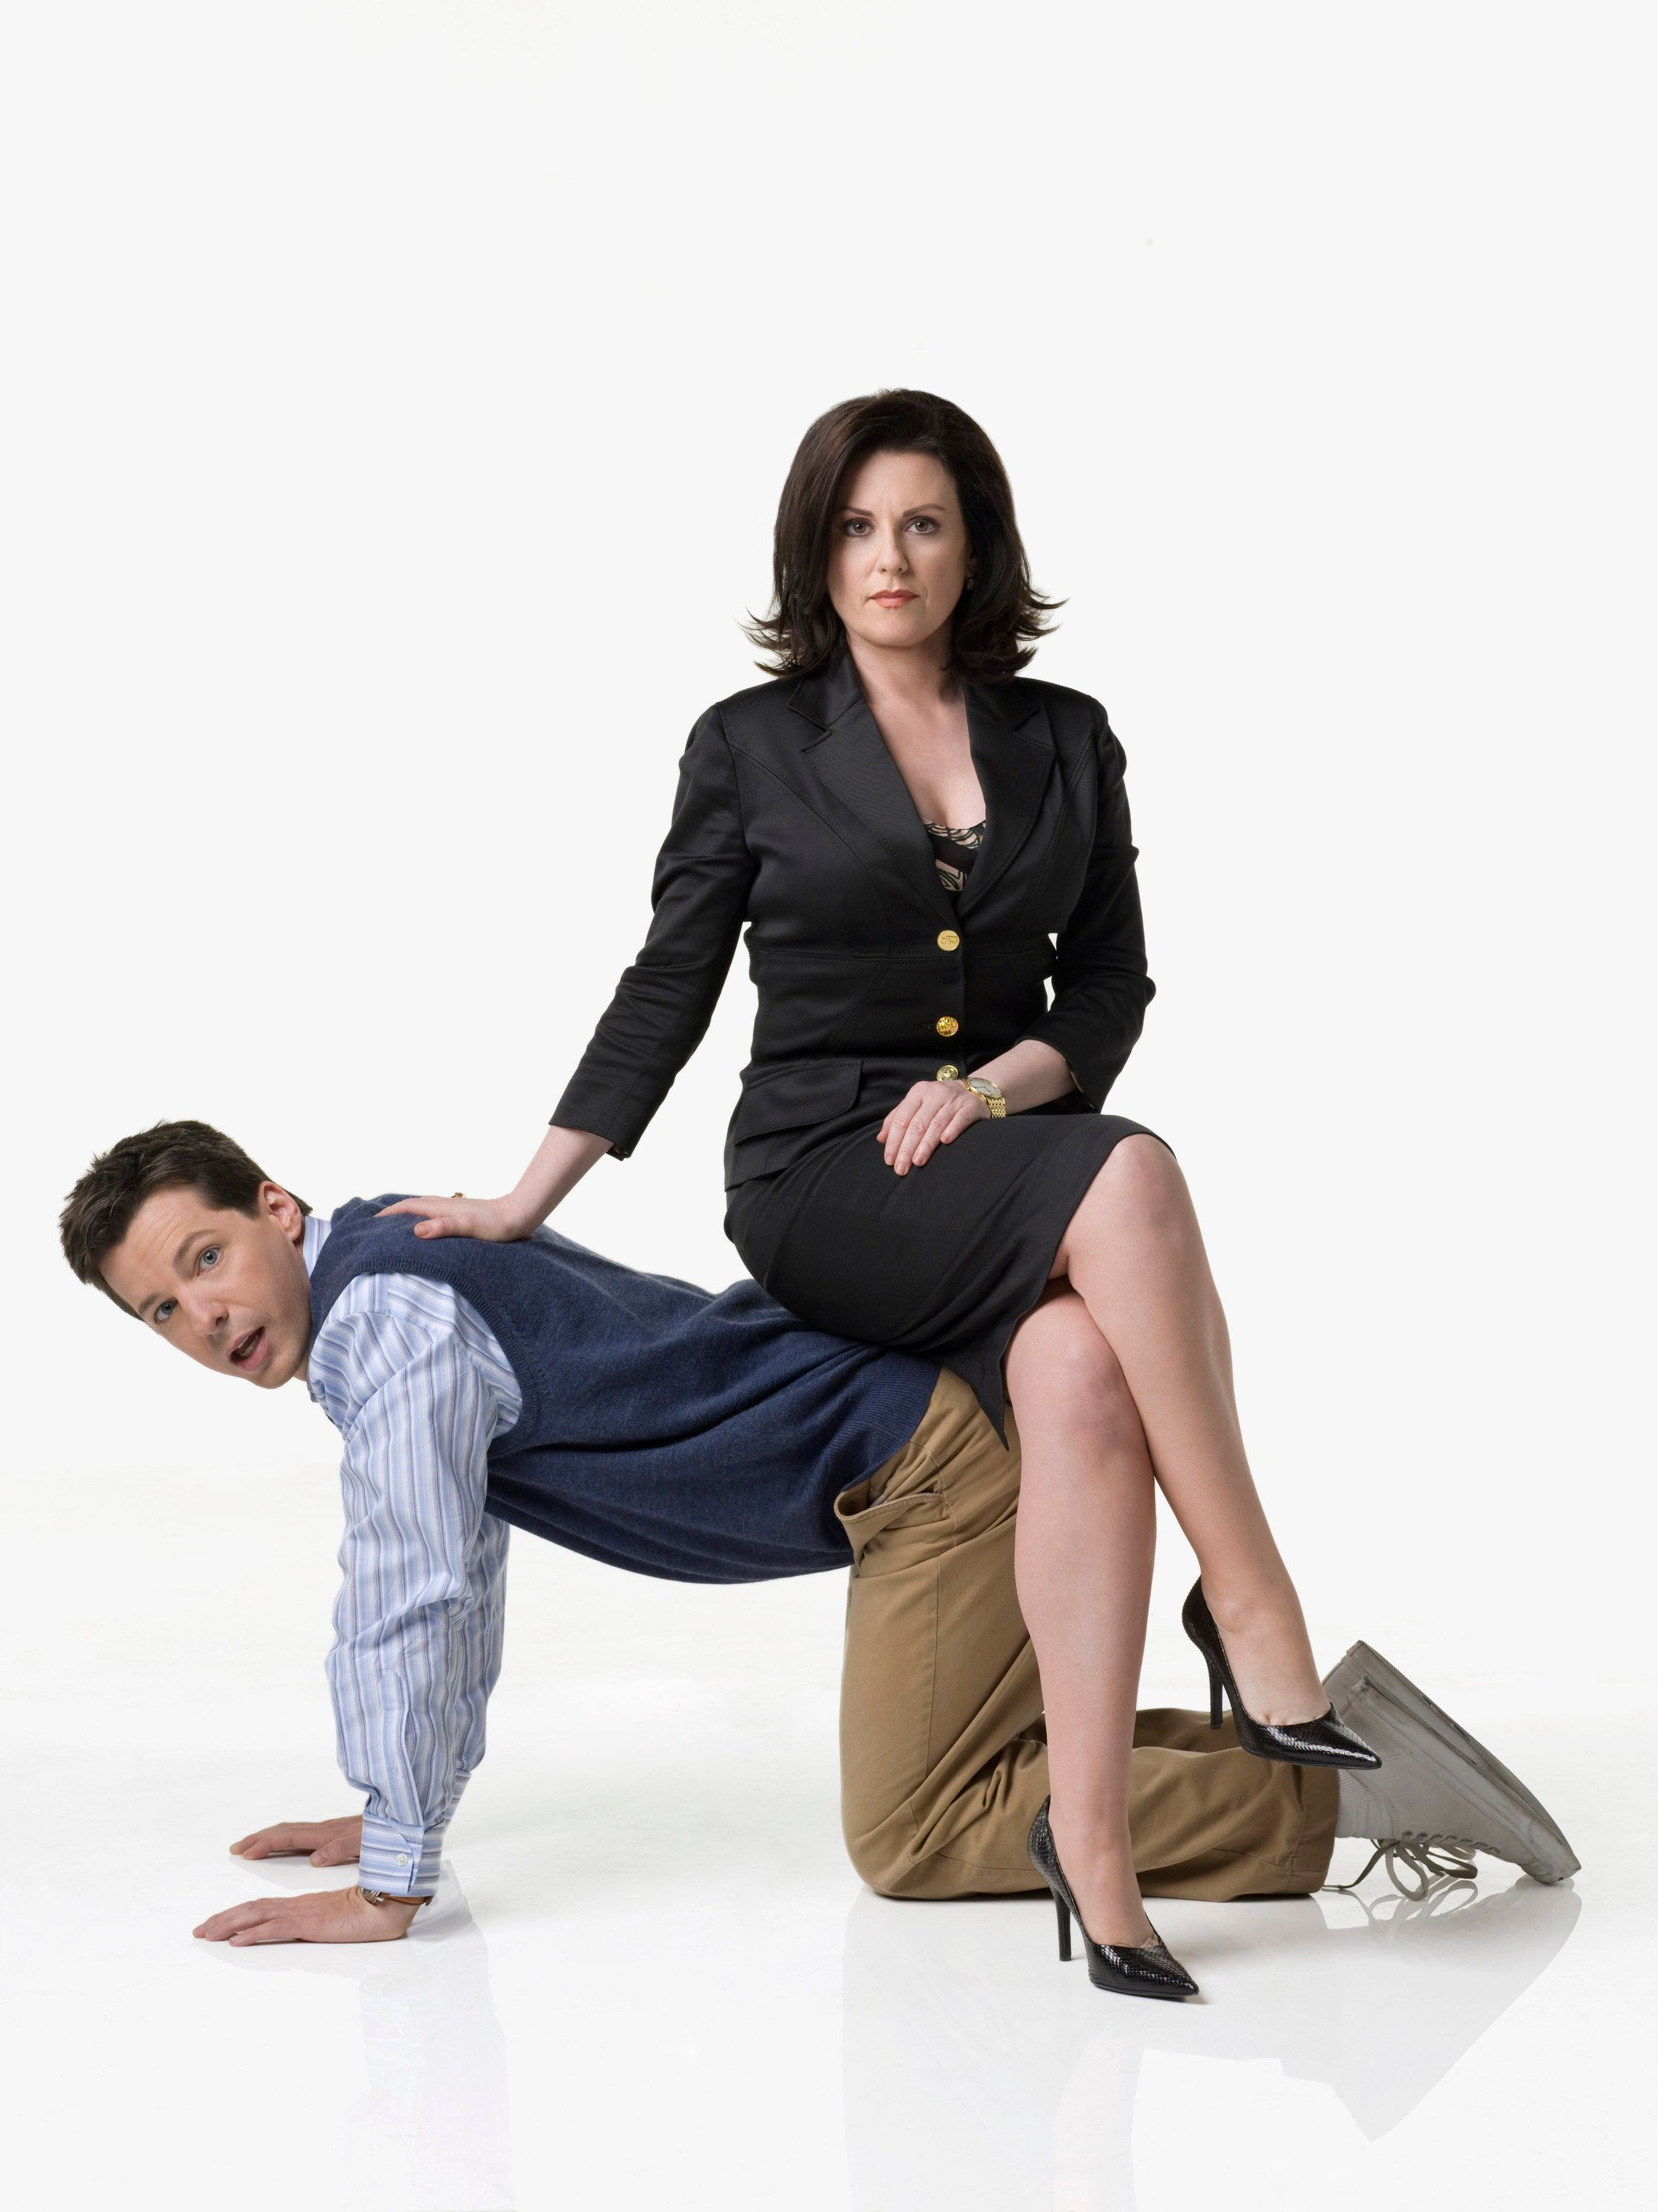 20 Times Karen And Jack Totally Stole The Show In 'Will And Grace'